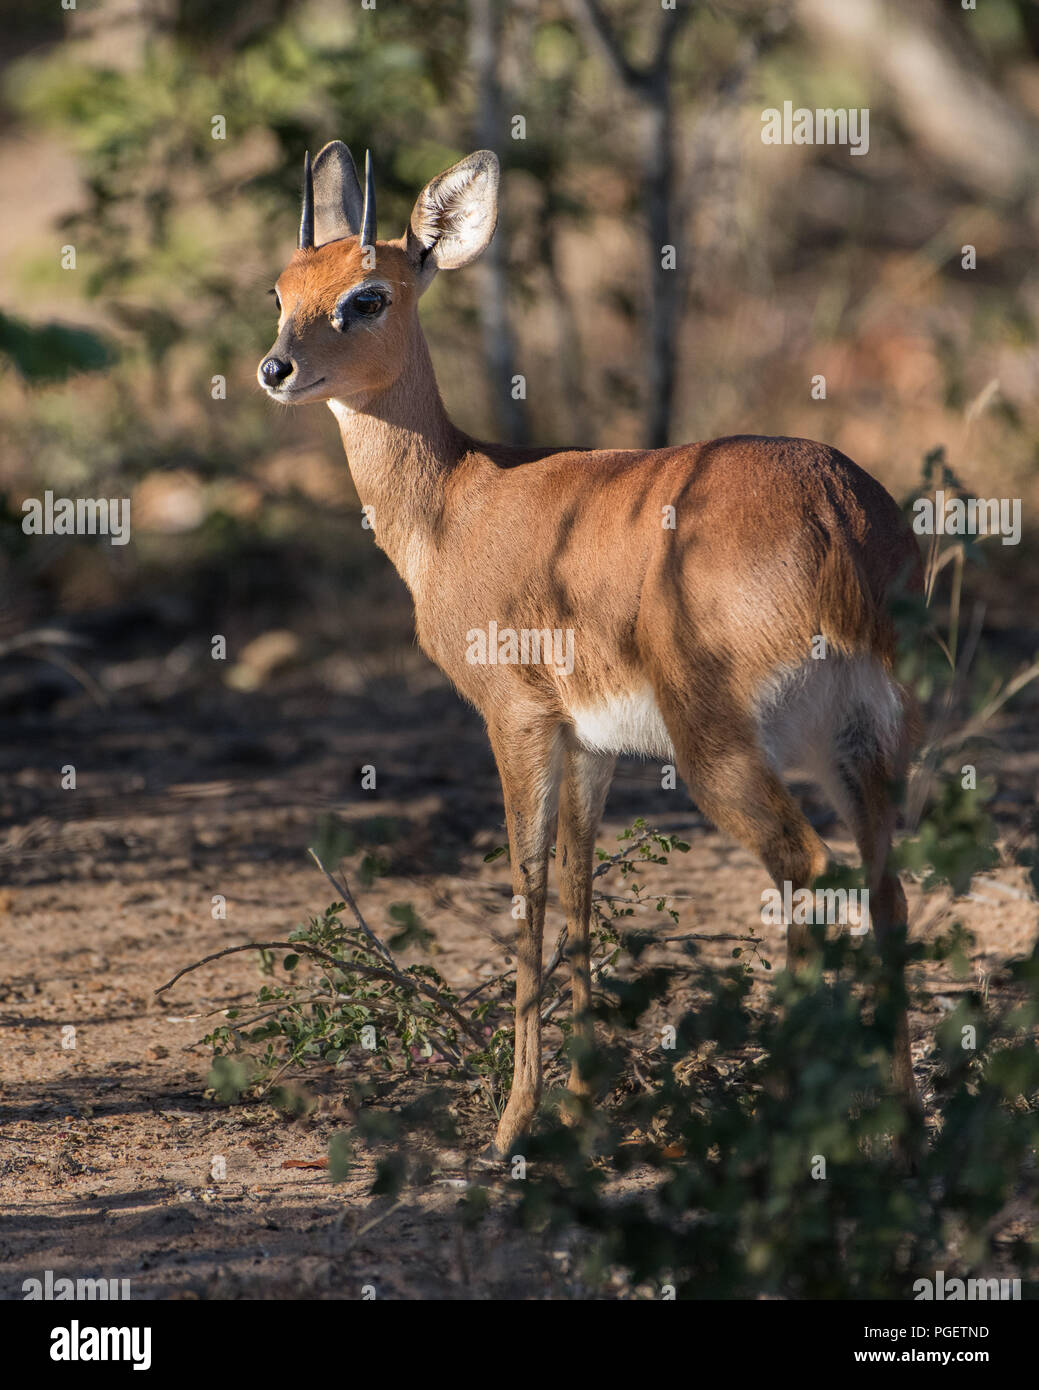 Male Steenbok Antelope standing in a clearing as it watchfully looks around. - Stock Image